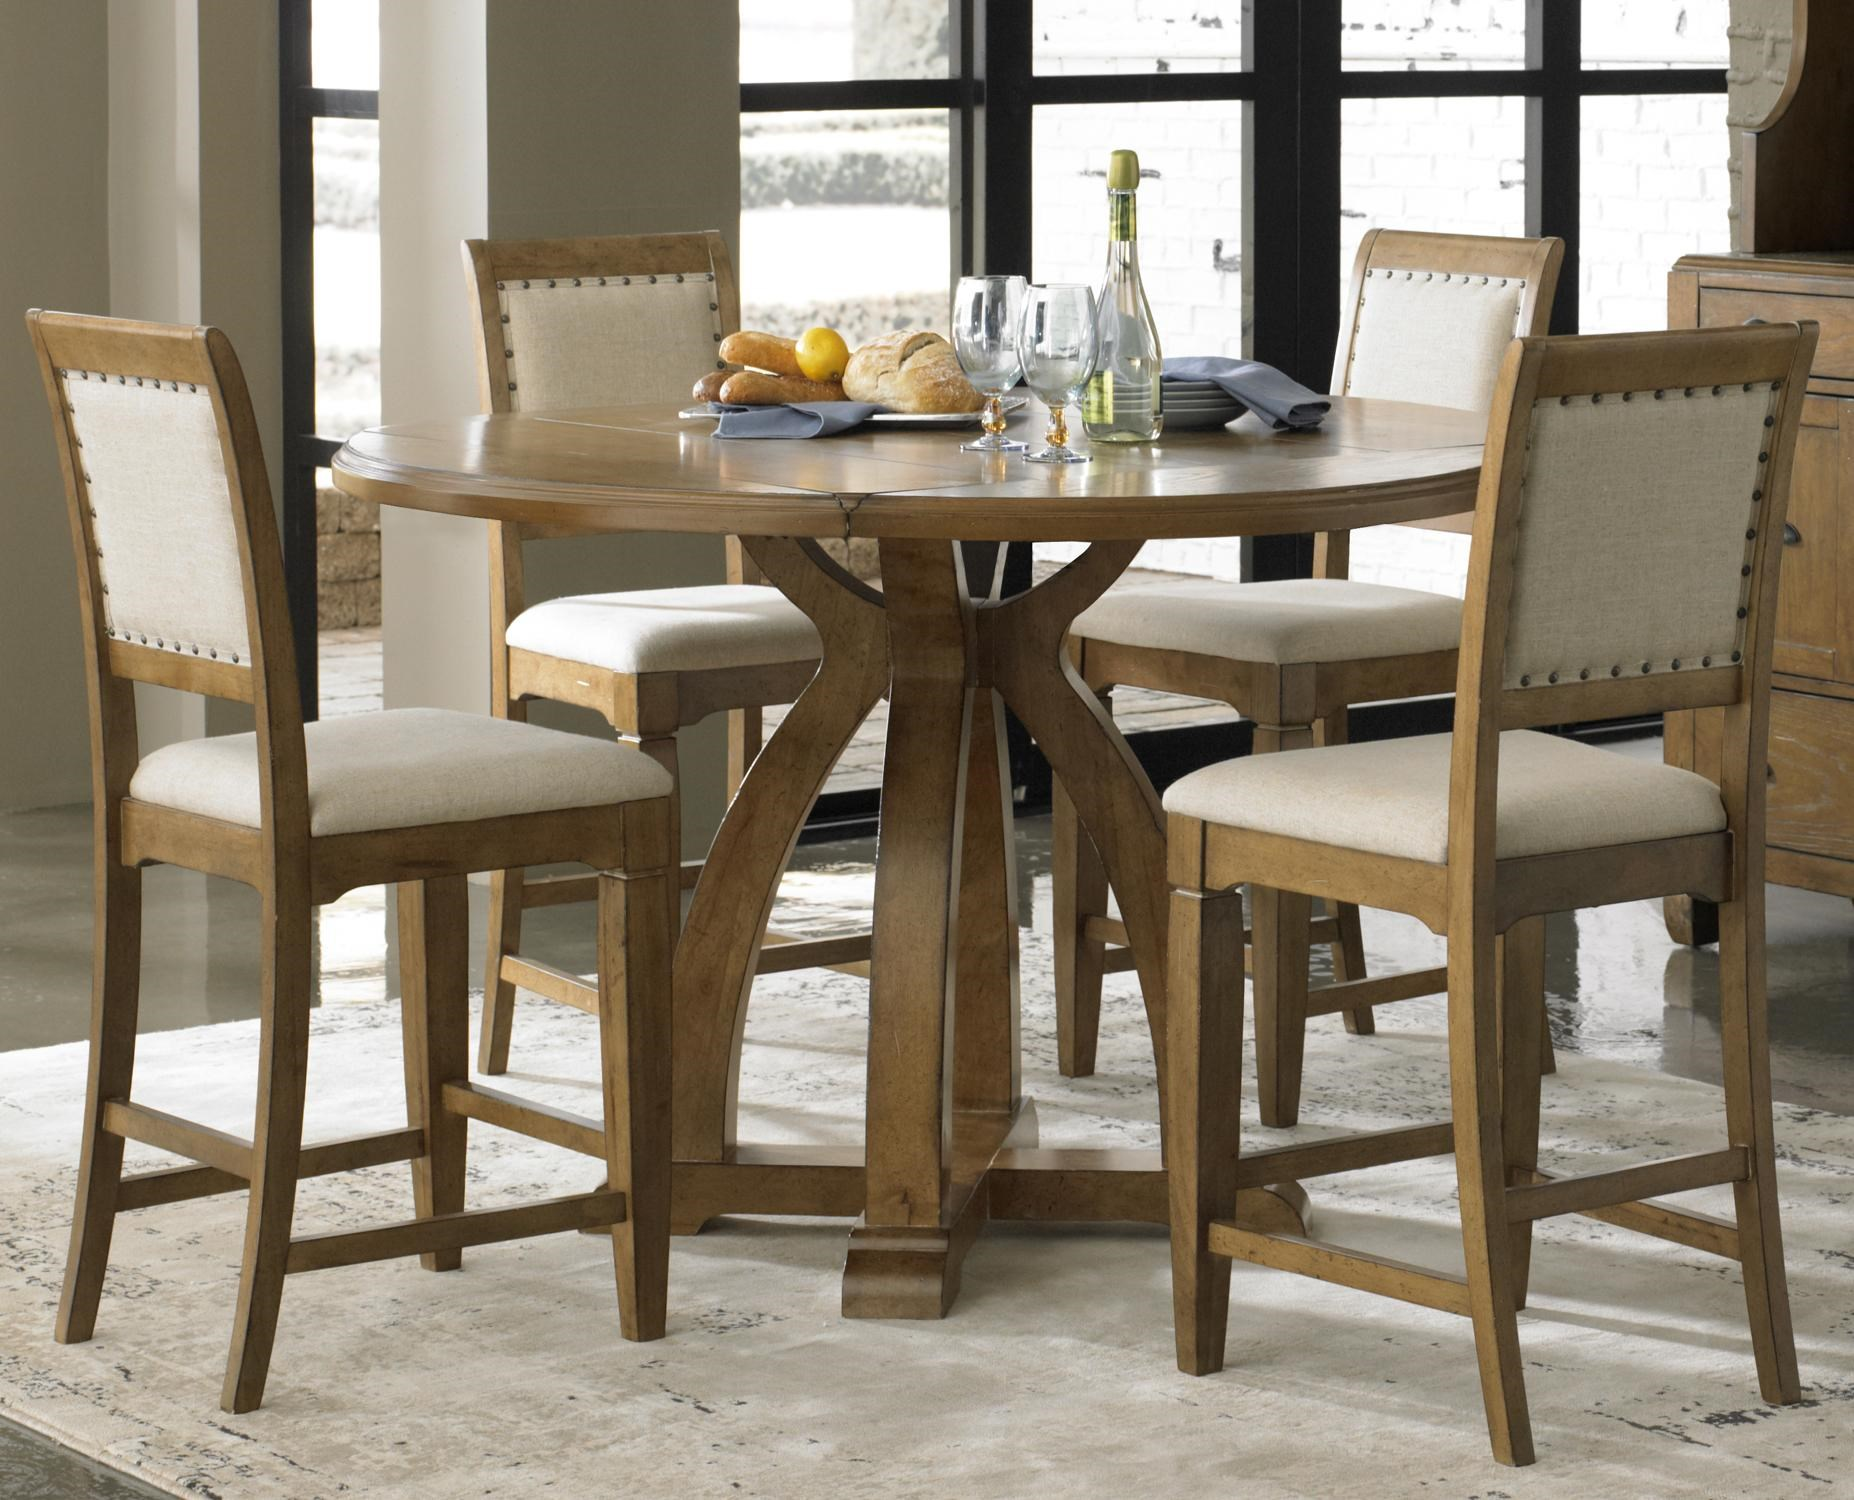 Liberty Furniture Town U0026 Country 5 Piece Gathering Table Set With 4  Upholstered Counter Height